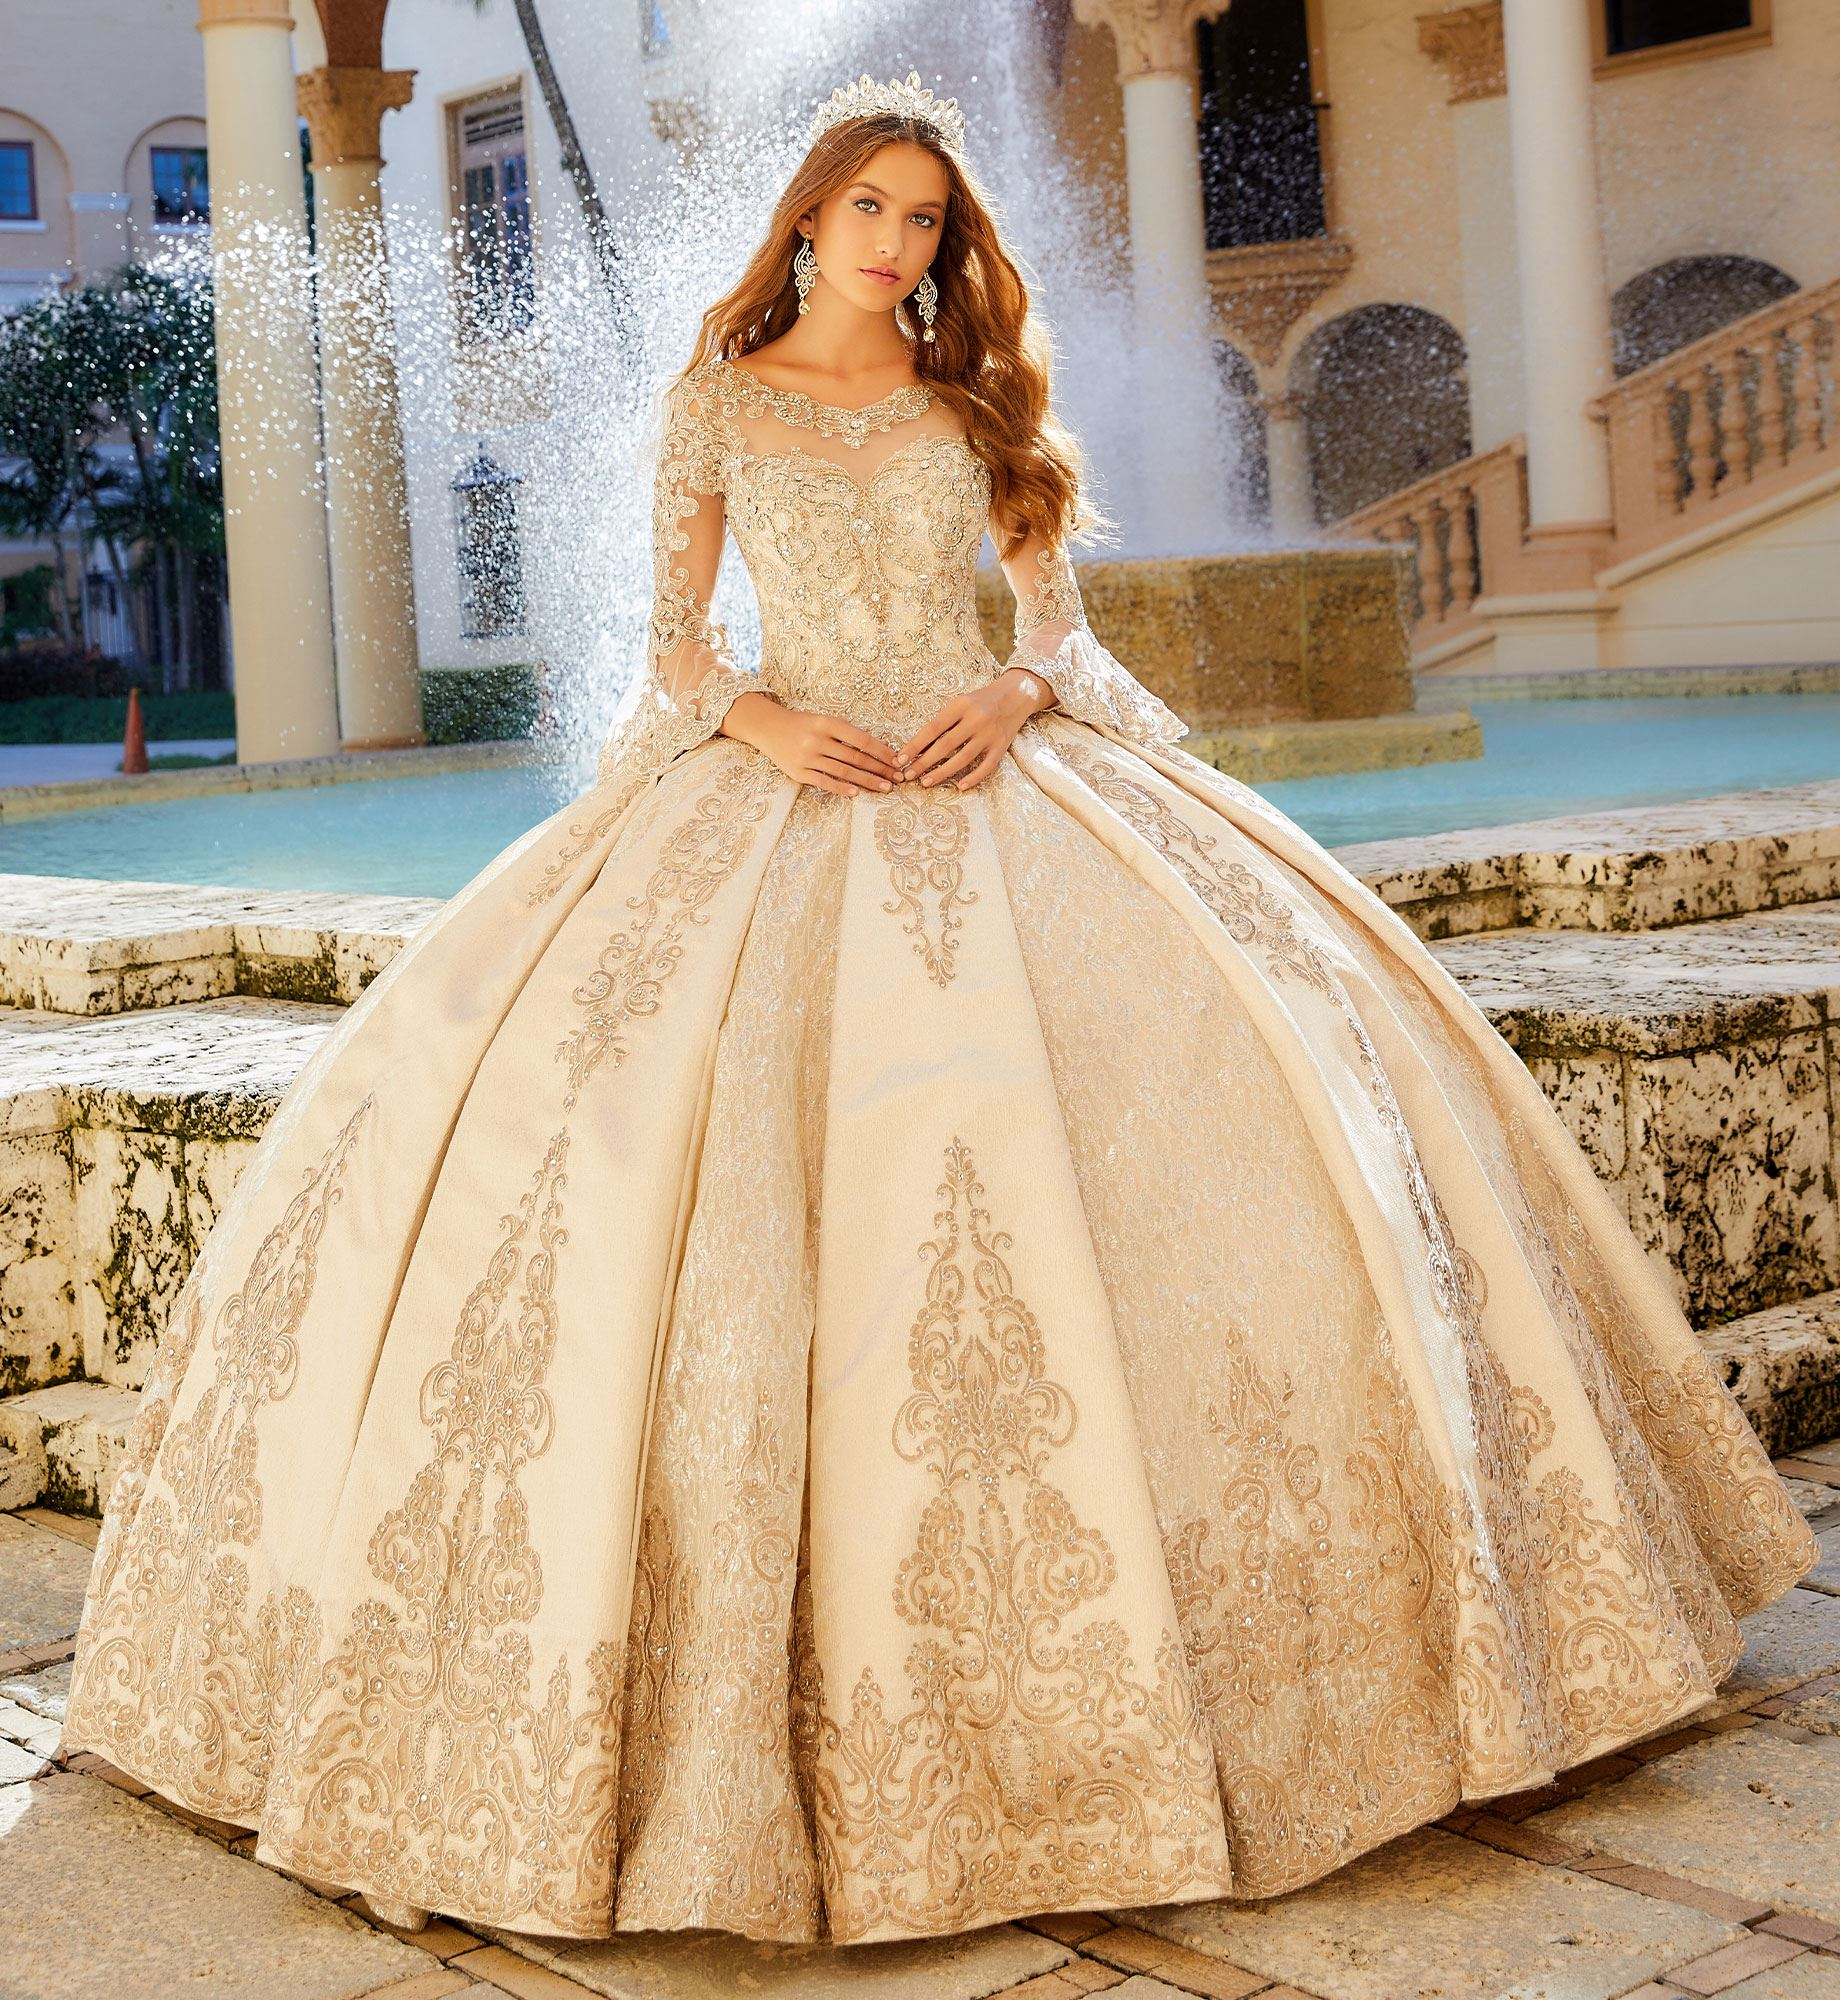 Brunette model in gold quinceañera dress with long sleeves